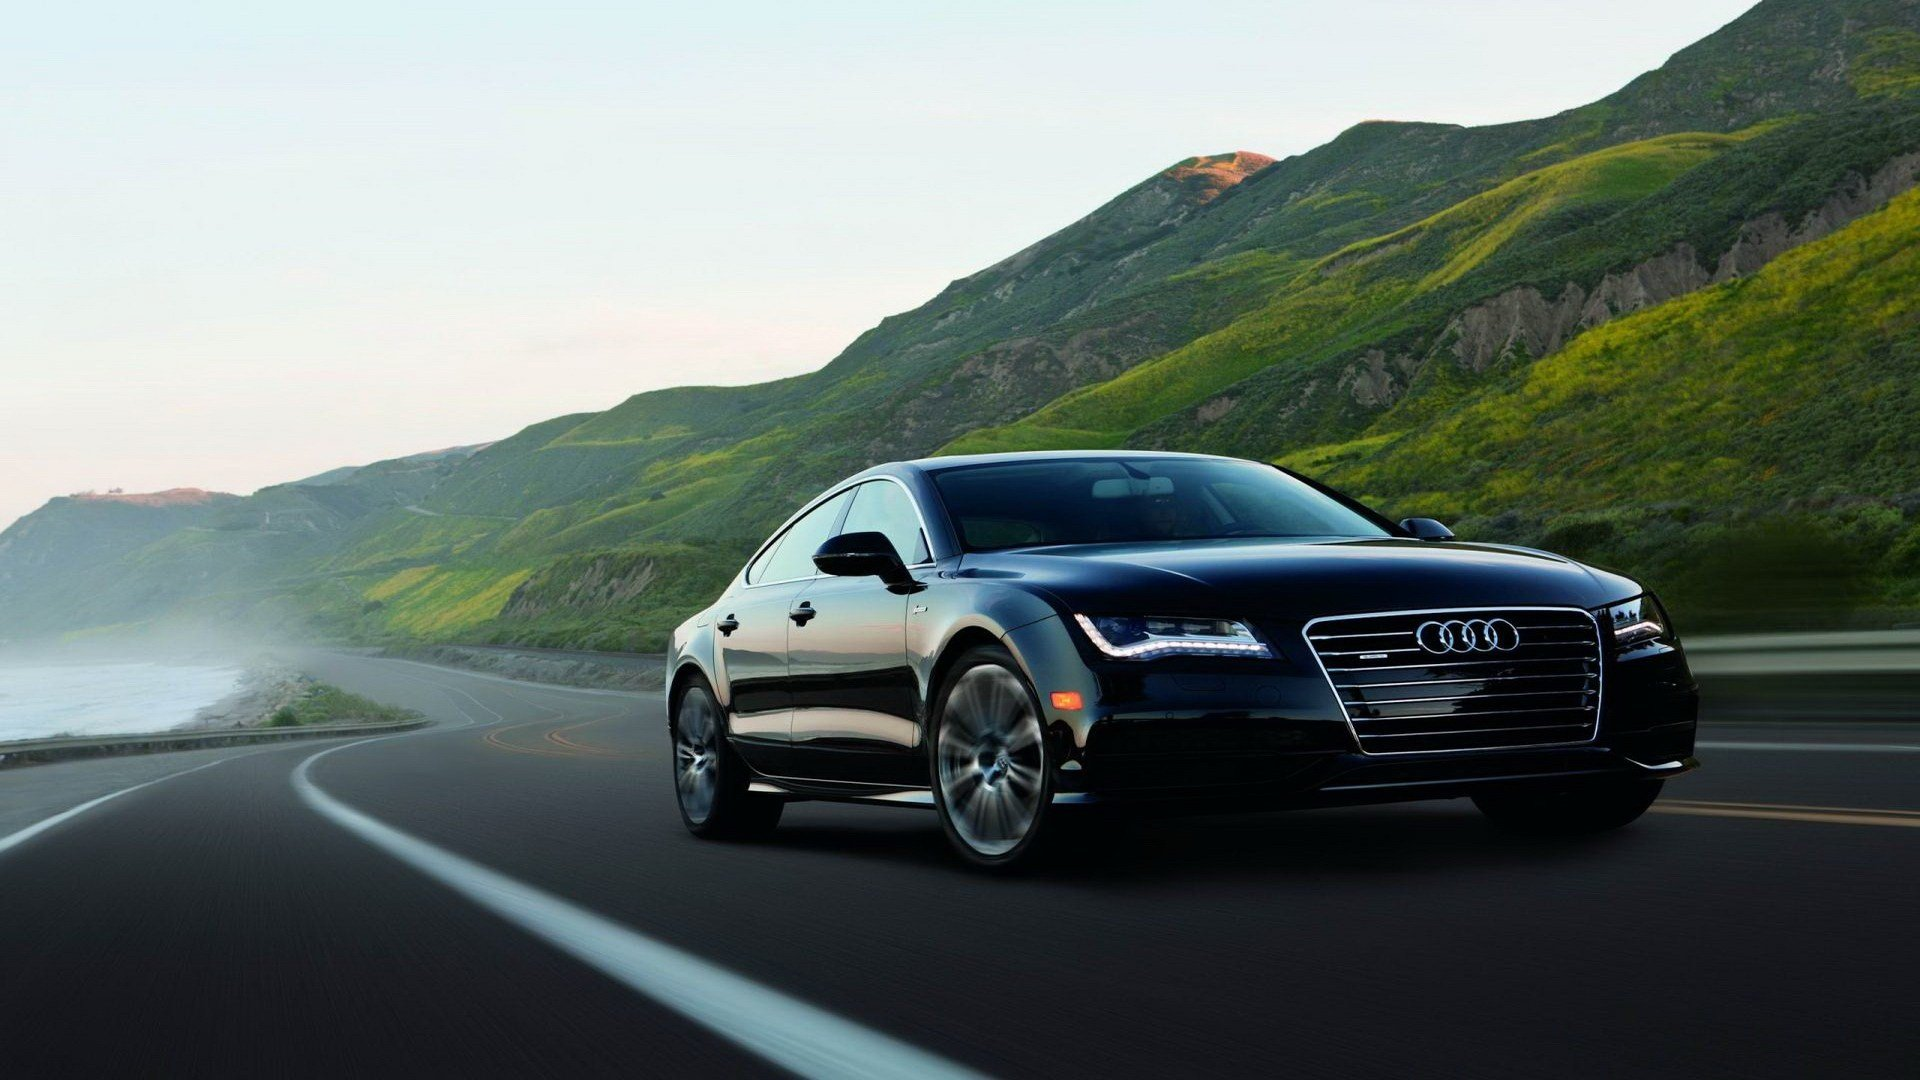 Latest Audi Wallpaper 1920X1080 Wallpapersafari Free Download